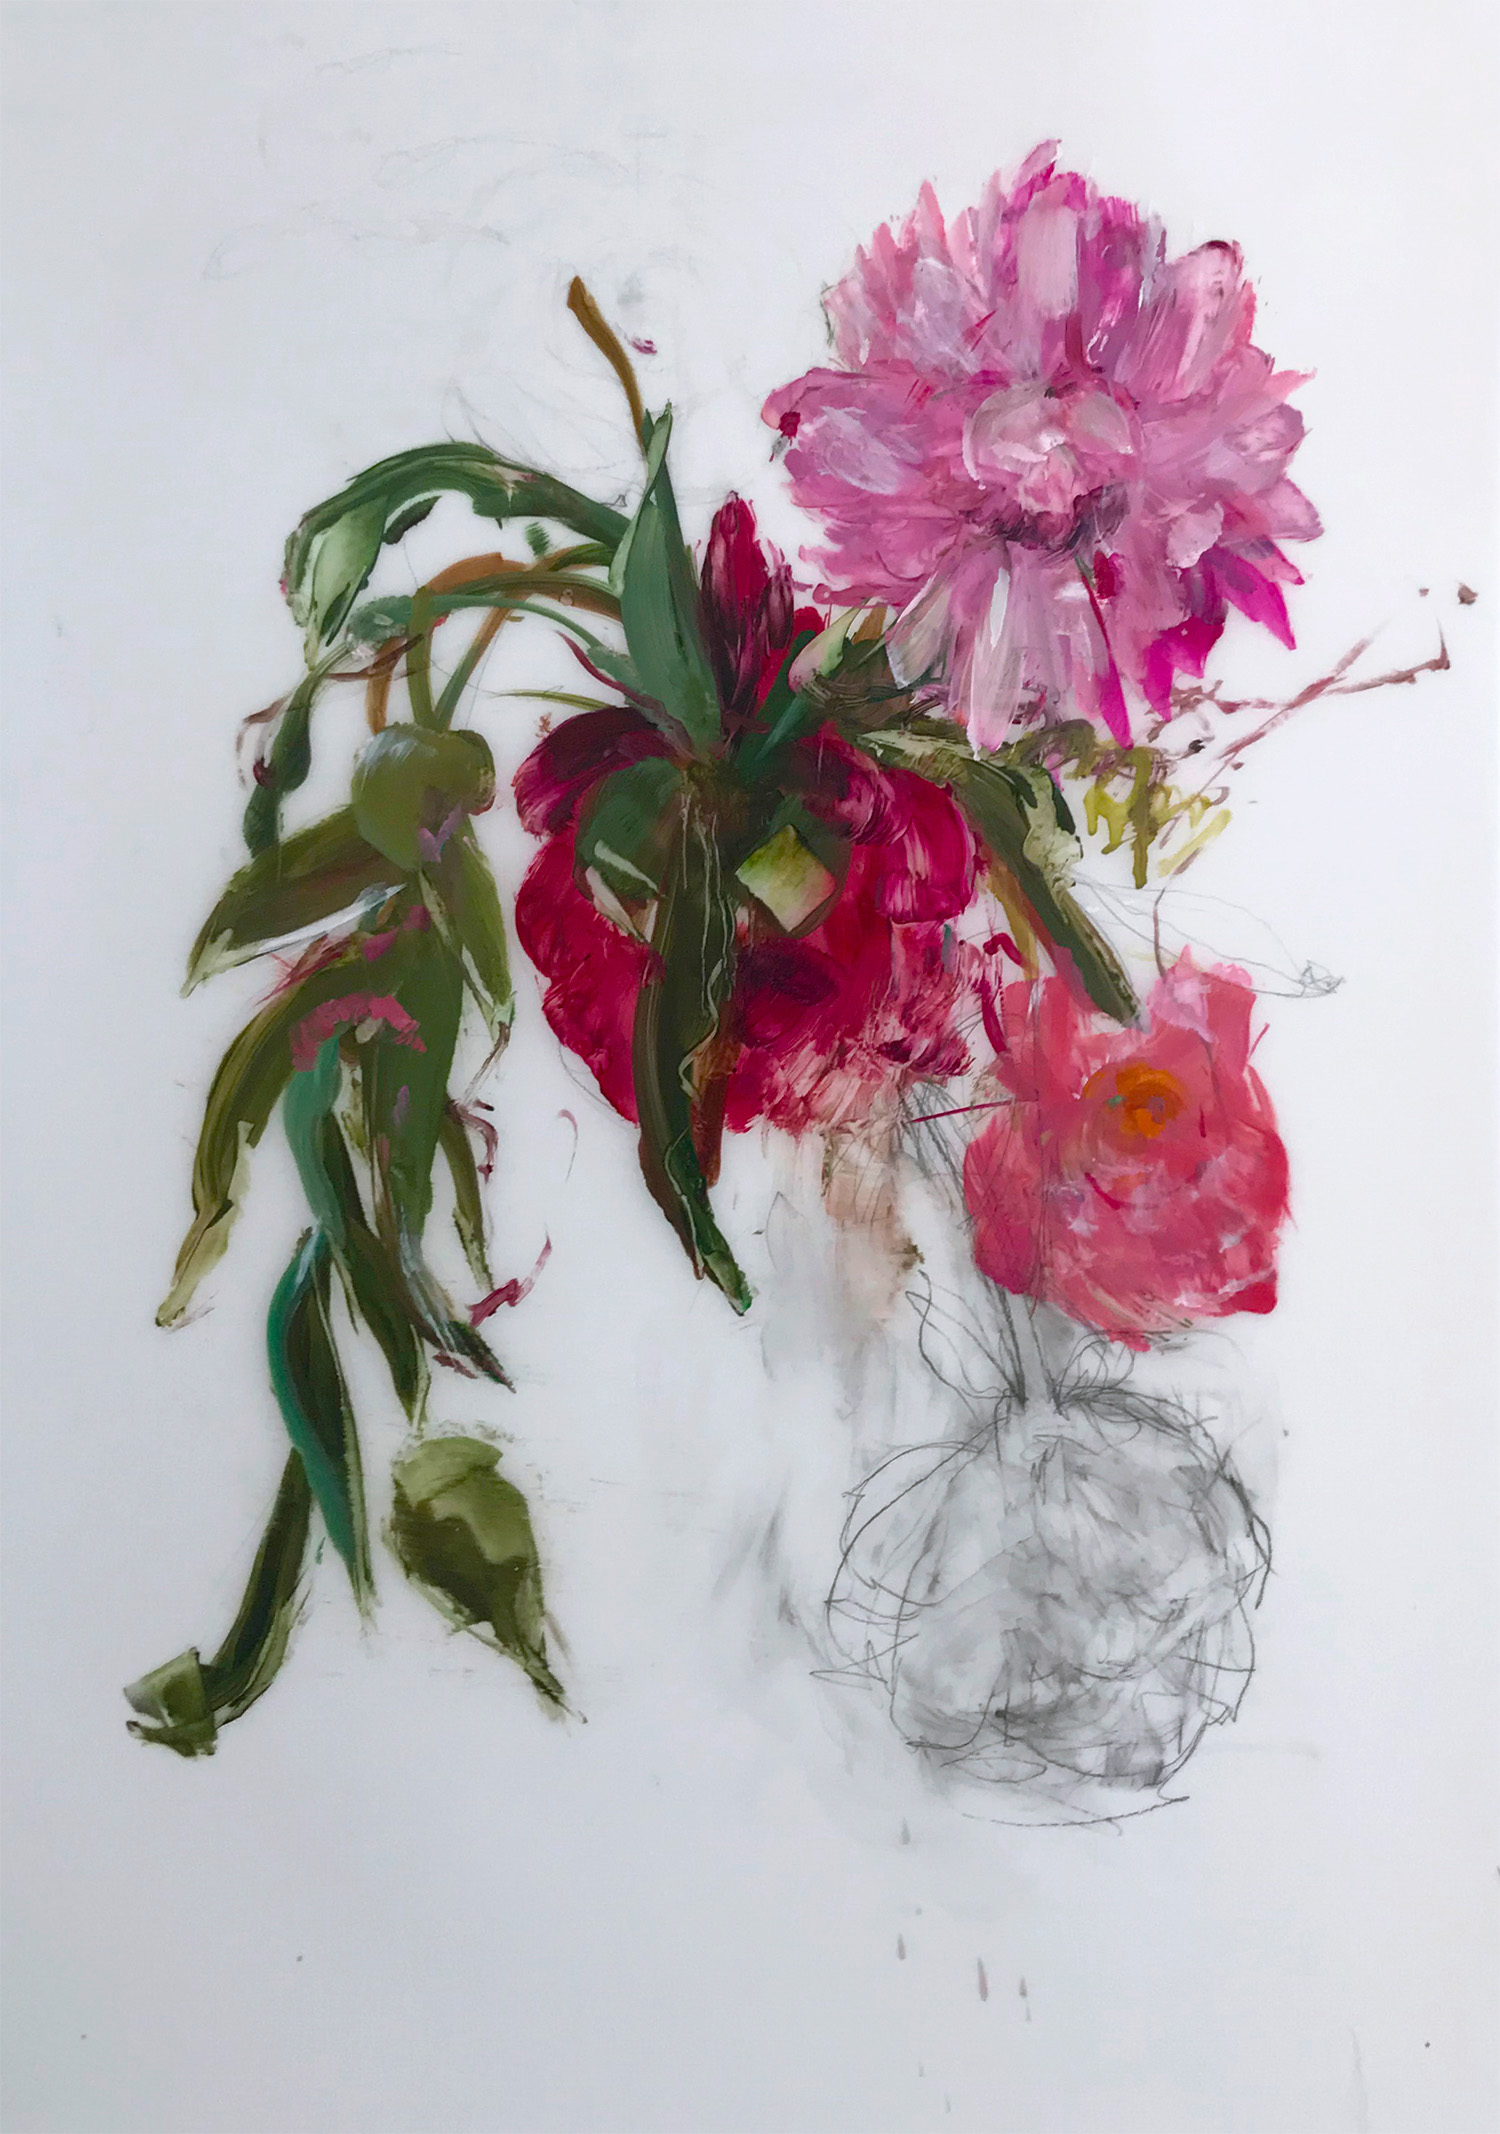 Madeleine Lamont, Pink Bouquet with Greenery 2, oil on mylar, 36 x 24 in.